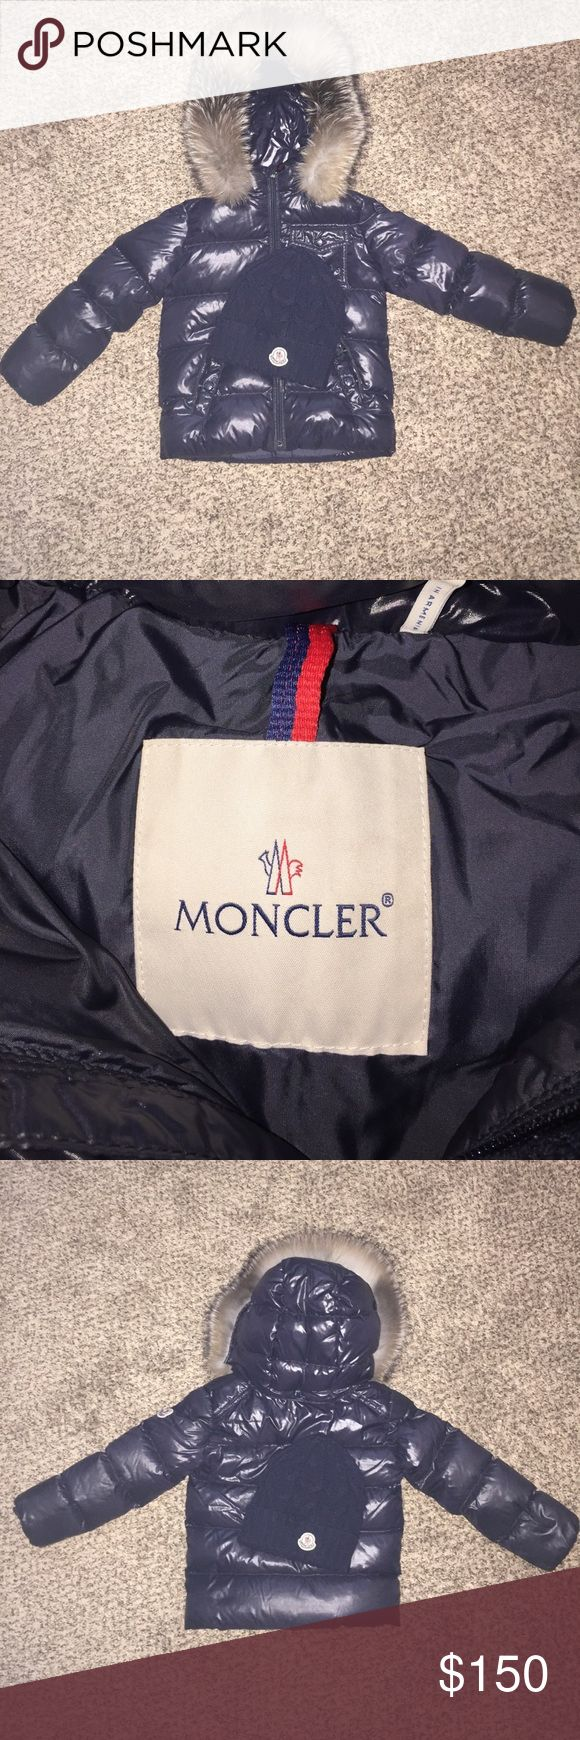 Little Boys Winter Jacket MONCLER Little Boys Jacket. Excellent Condition. Comes with matching black MONCLER hat. Moncler Jackets & Coats Puffers